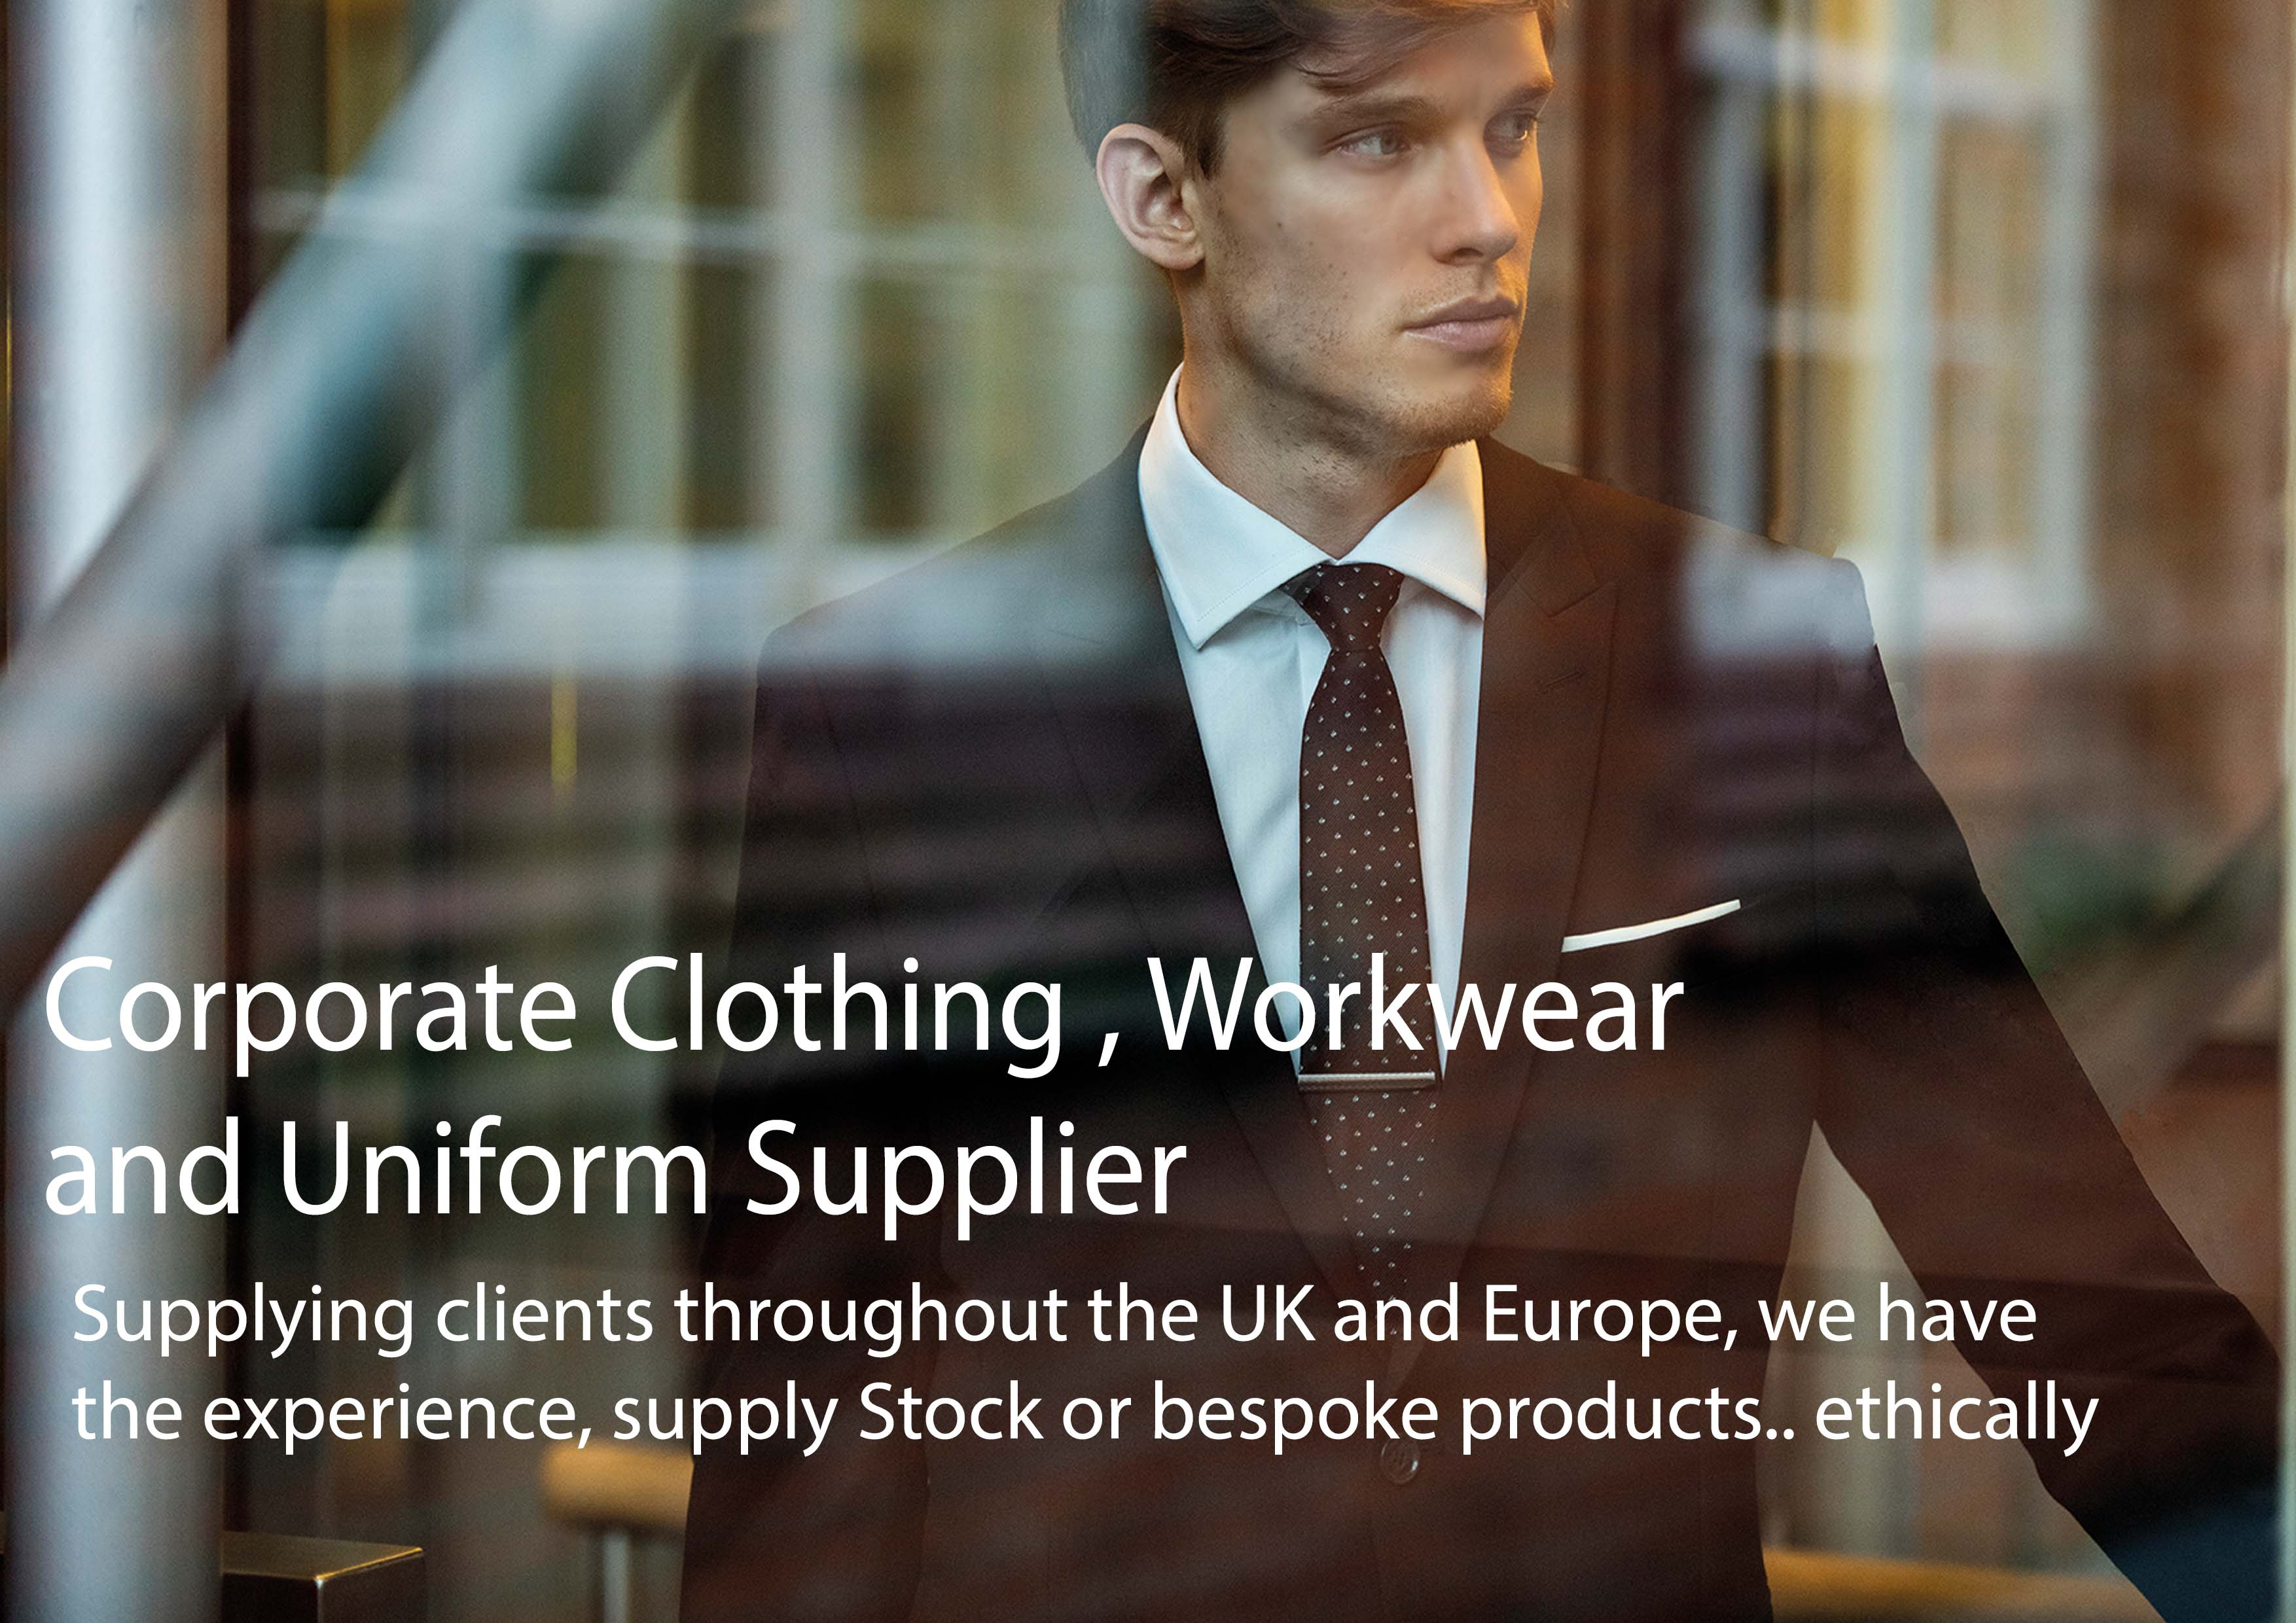 Choosing a Corporate clothing supplier